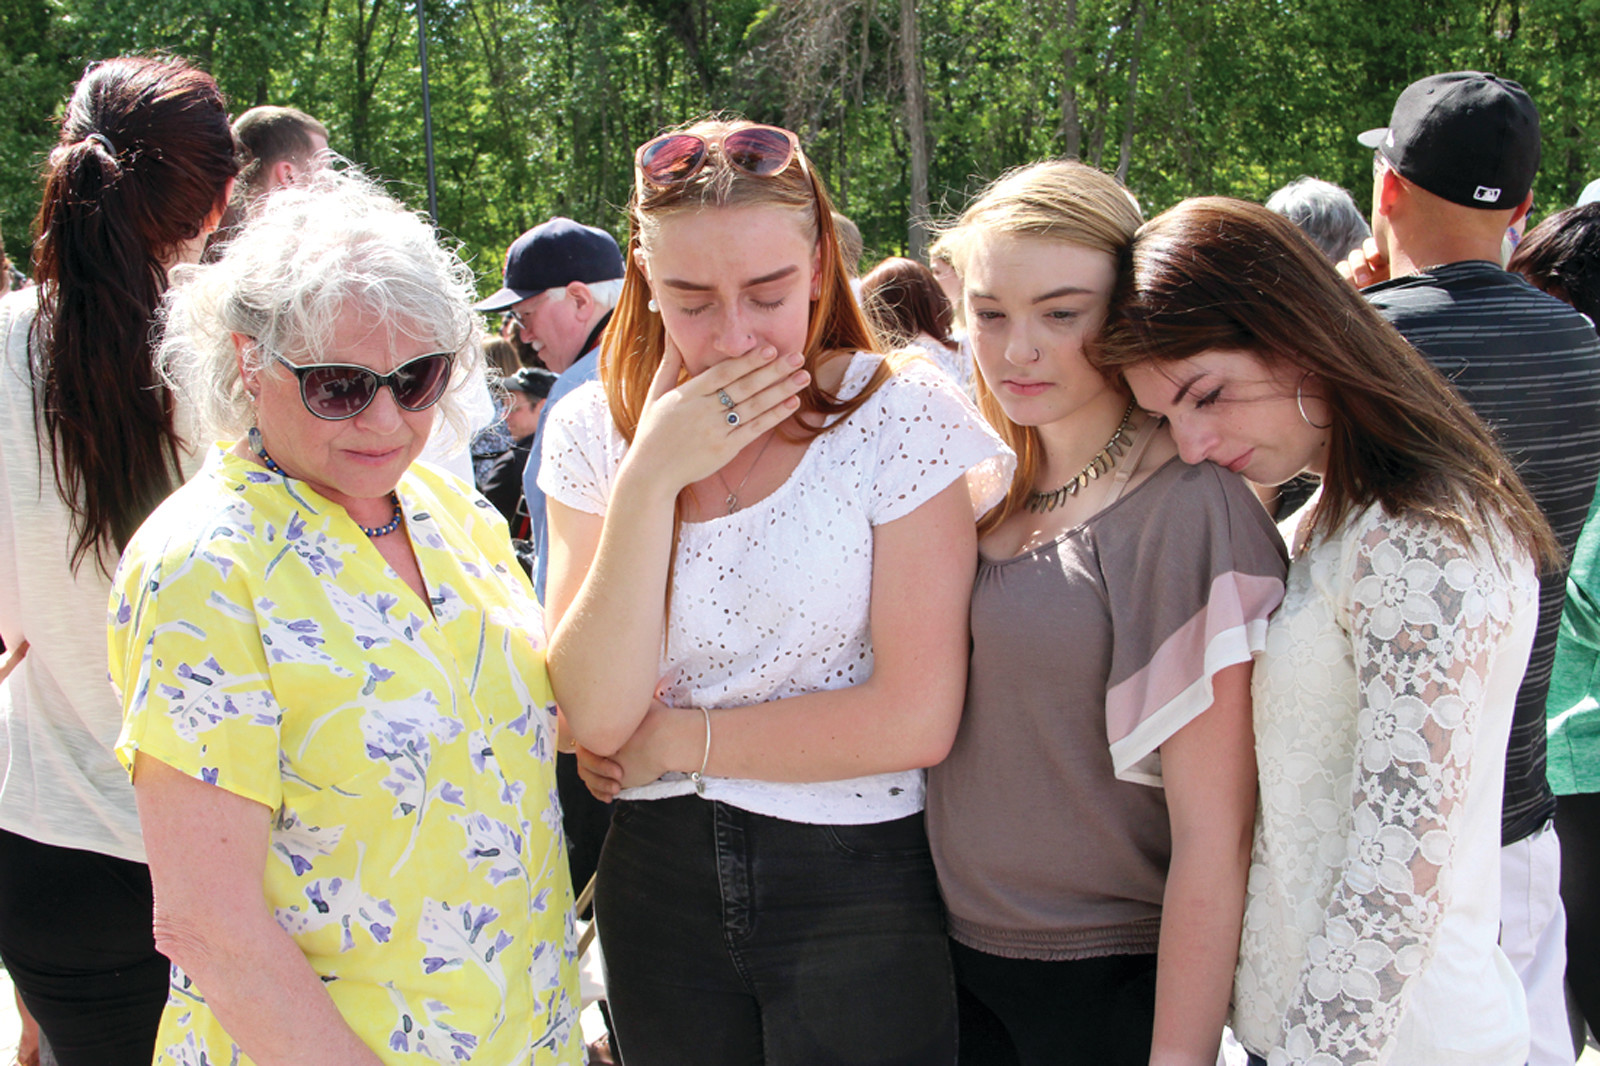 REMEMBERING MIKE: Dana Christman (left) consoles her granddaughters Maria and Emily Fresolo and grandniece Toni. Mike Fresolo died in the fire when Maria was a toddler. Christman said it was three weeks after the fire before Fresolo's death was confirmed.